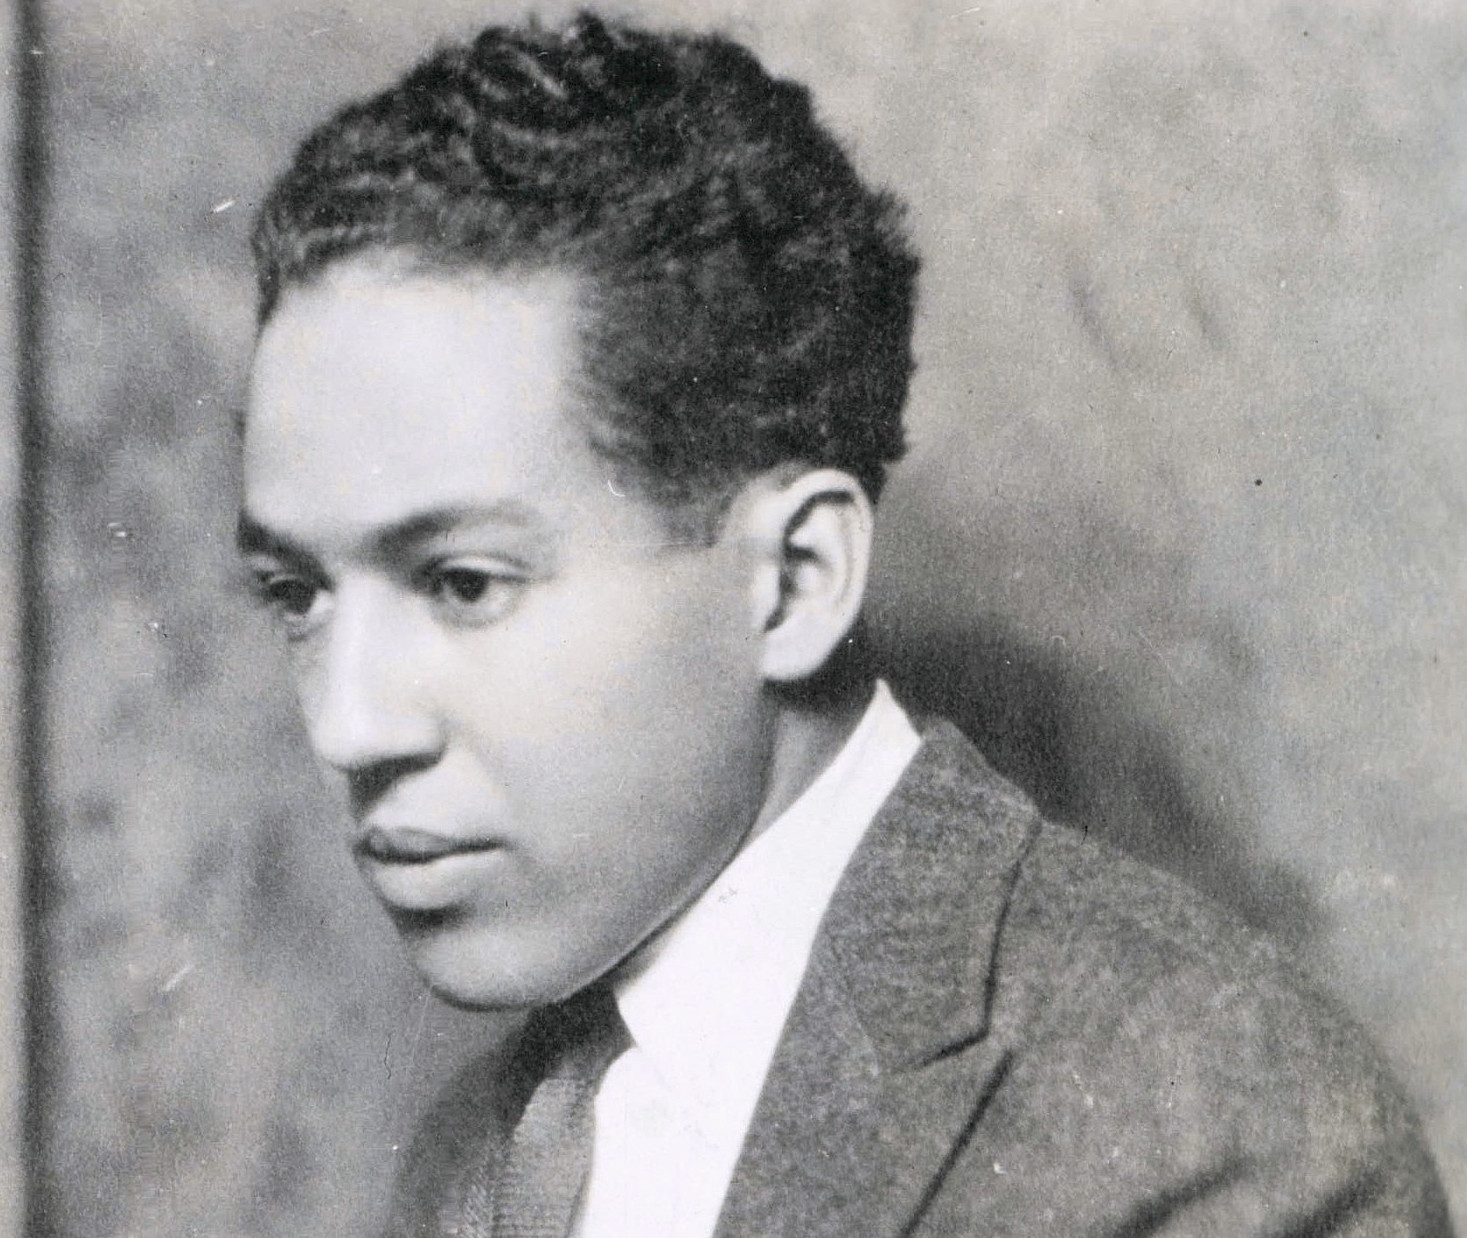 langston hudges One of the most famous poems penned by harlem renaissance poet langston hughes written in 1951, this poem was the inspiration for lorraine hansberry's classic play a raisin in the sun.